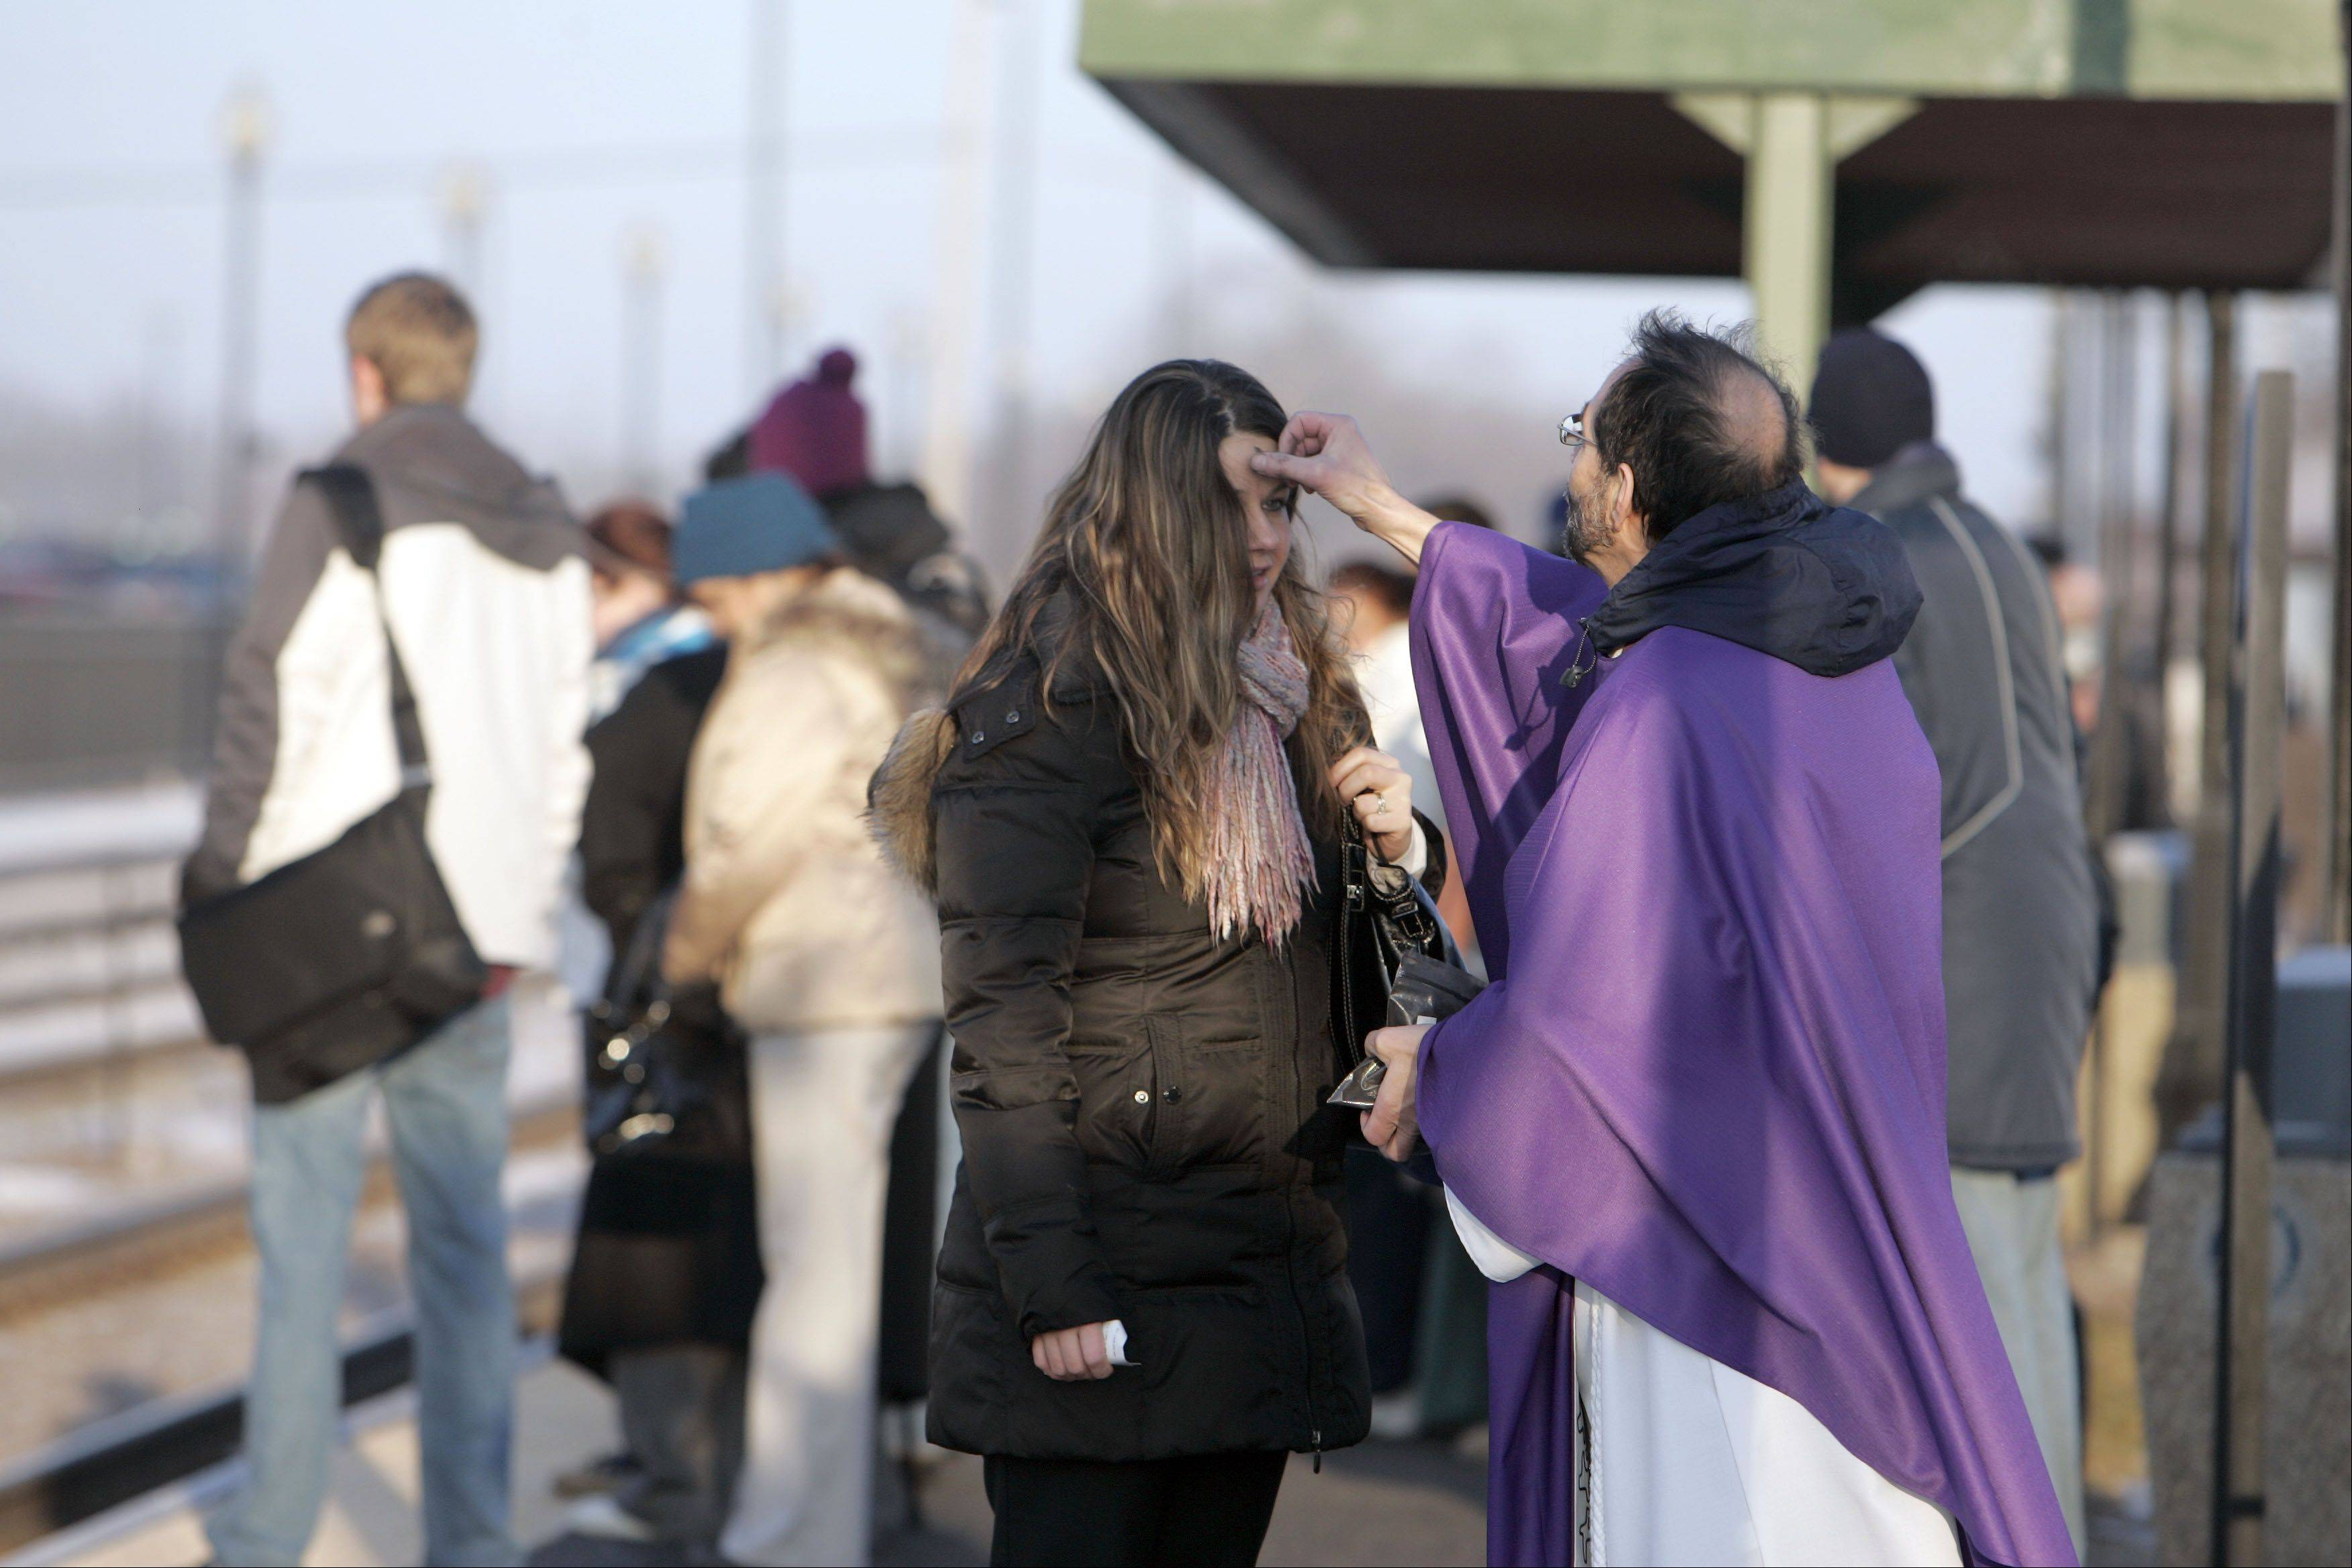 Father Manny Borg of St. Nicholas Episcopal Church in Elk Grove Village disperses ashes to an unidentified commuter at the Cary Metra Station Wednesday February 13, 2013.